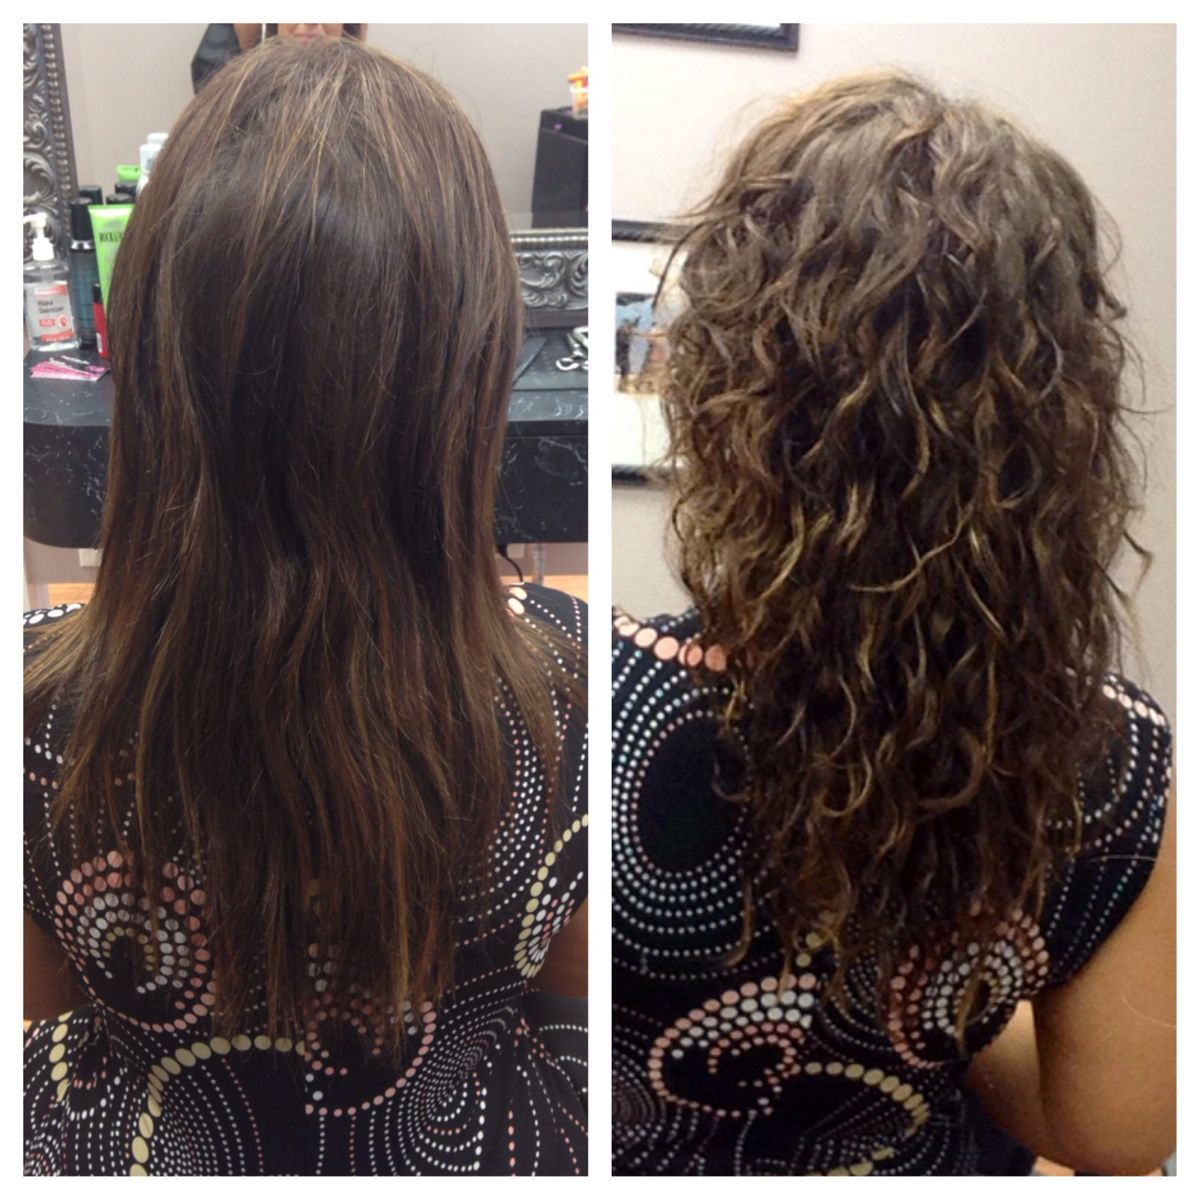 pin by jackie cortopassi on hair nd stuff | permed